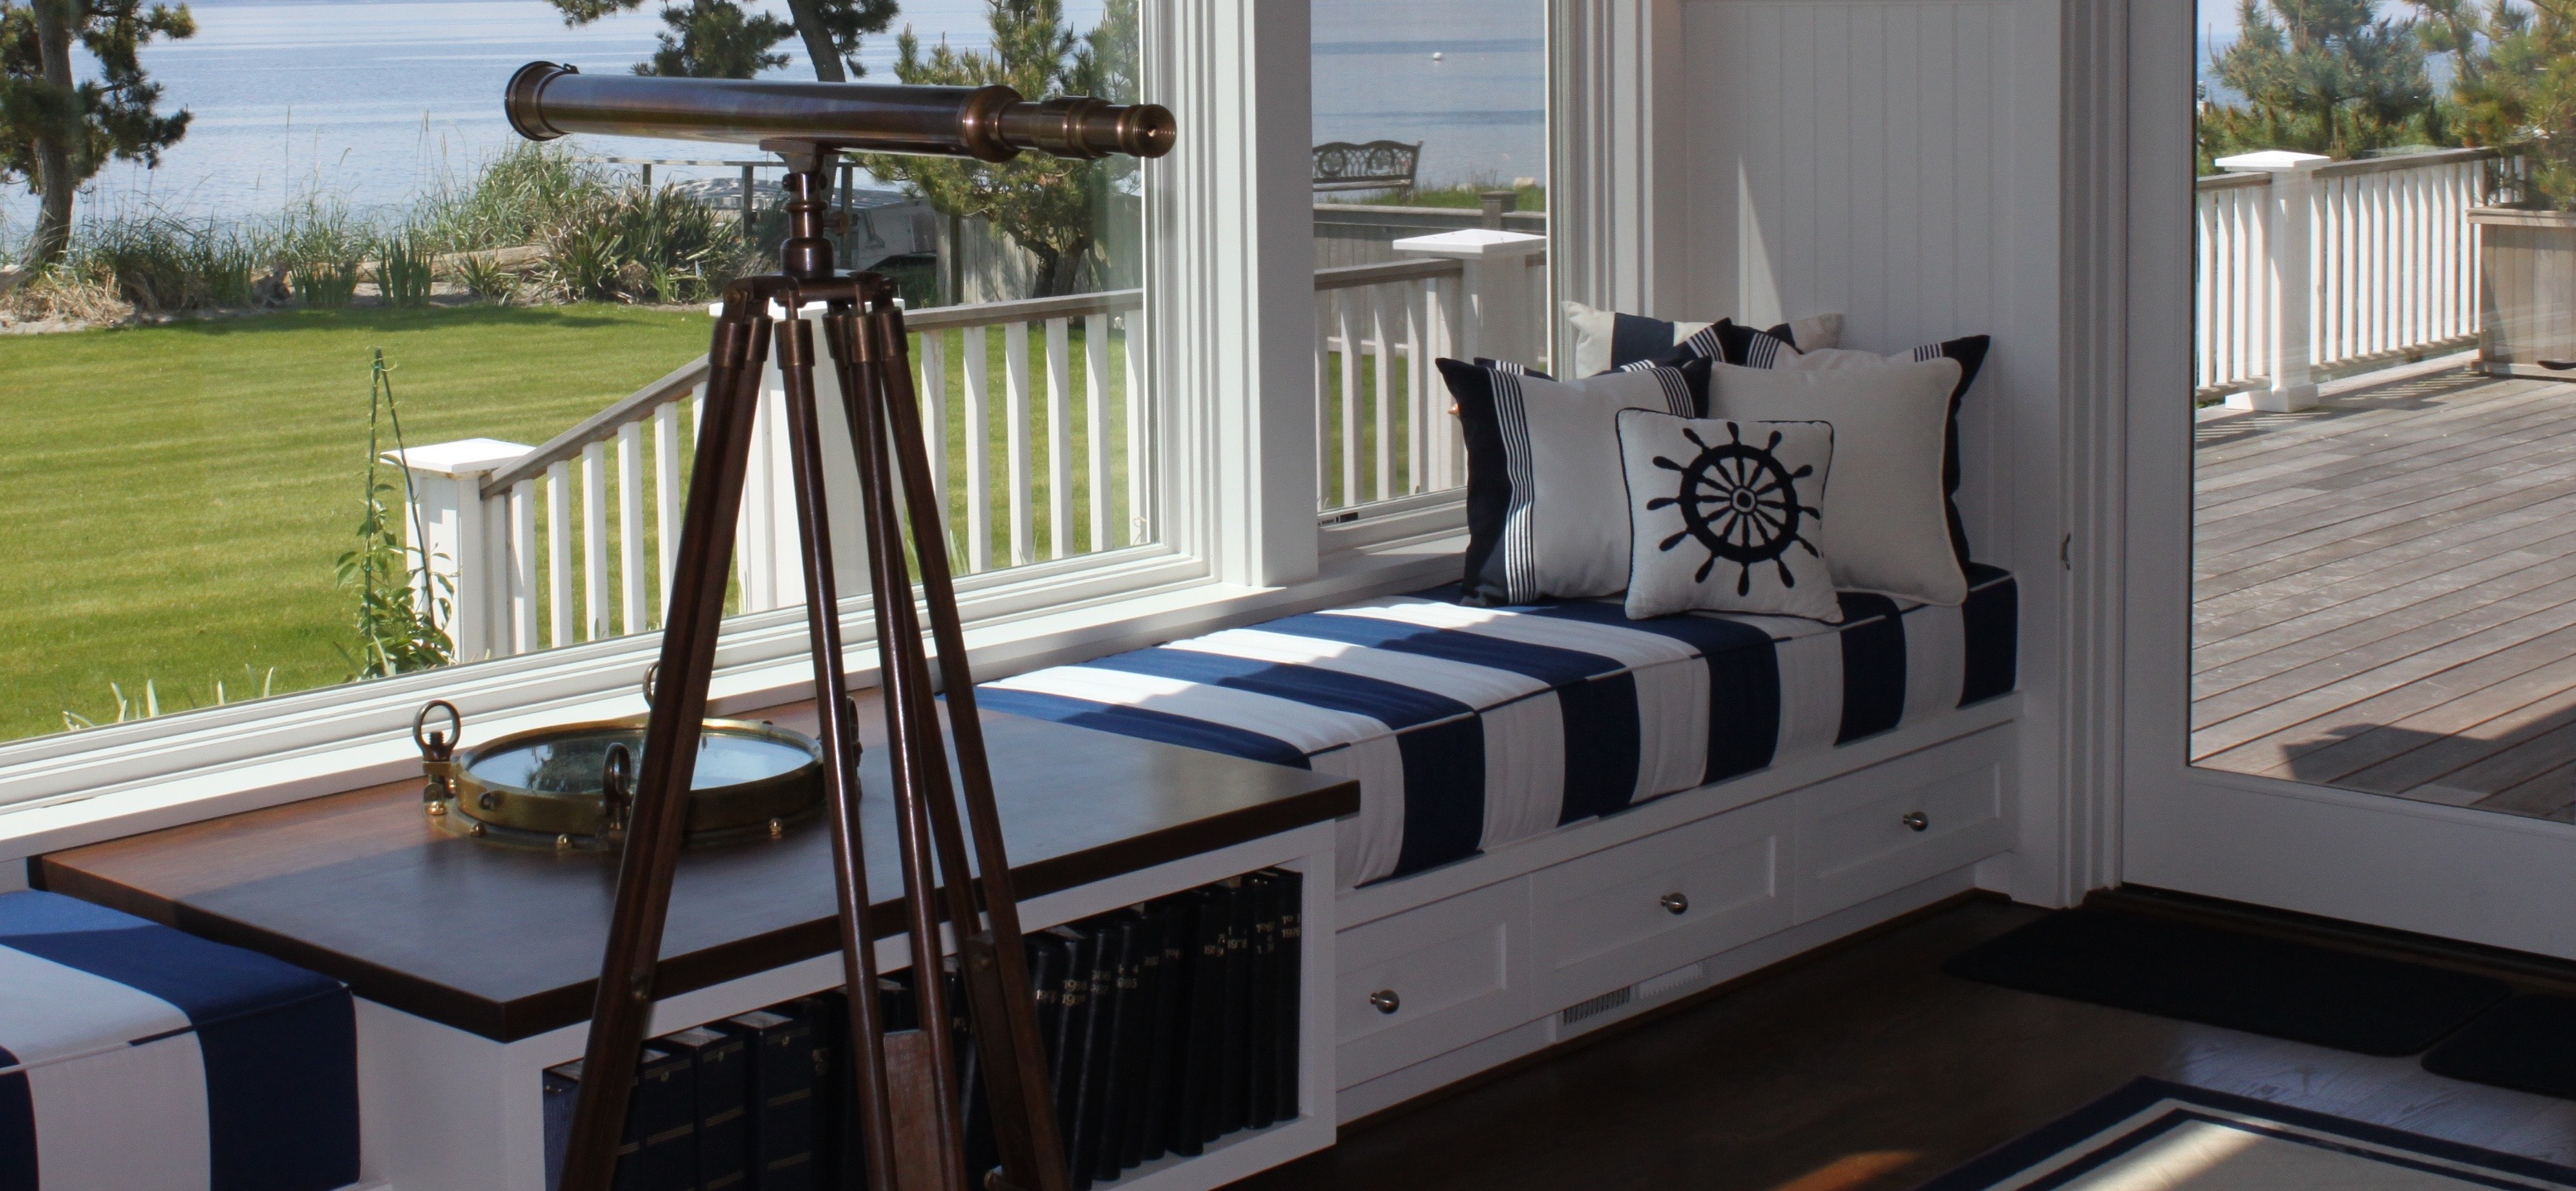 5 Interior Design Decorating Tips For A Nautical Theme